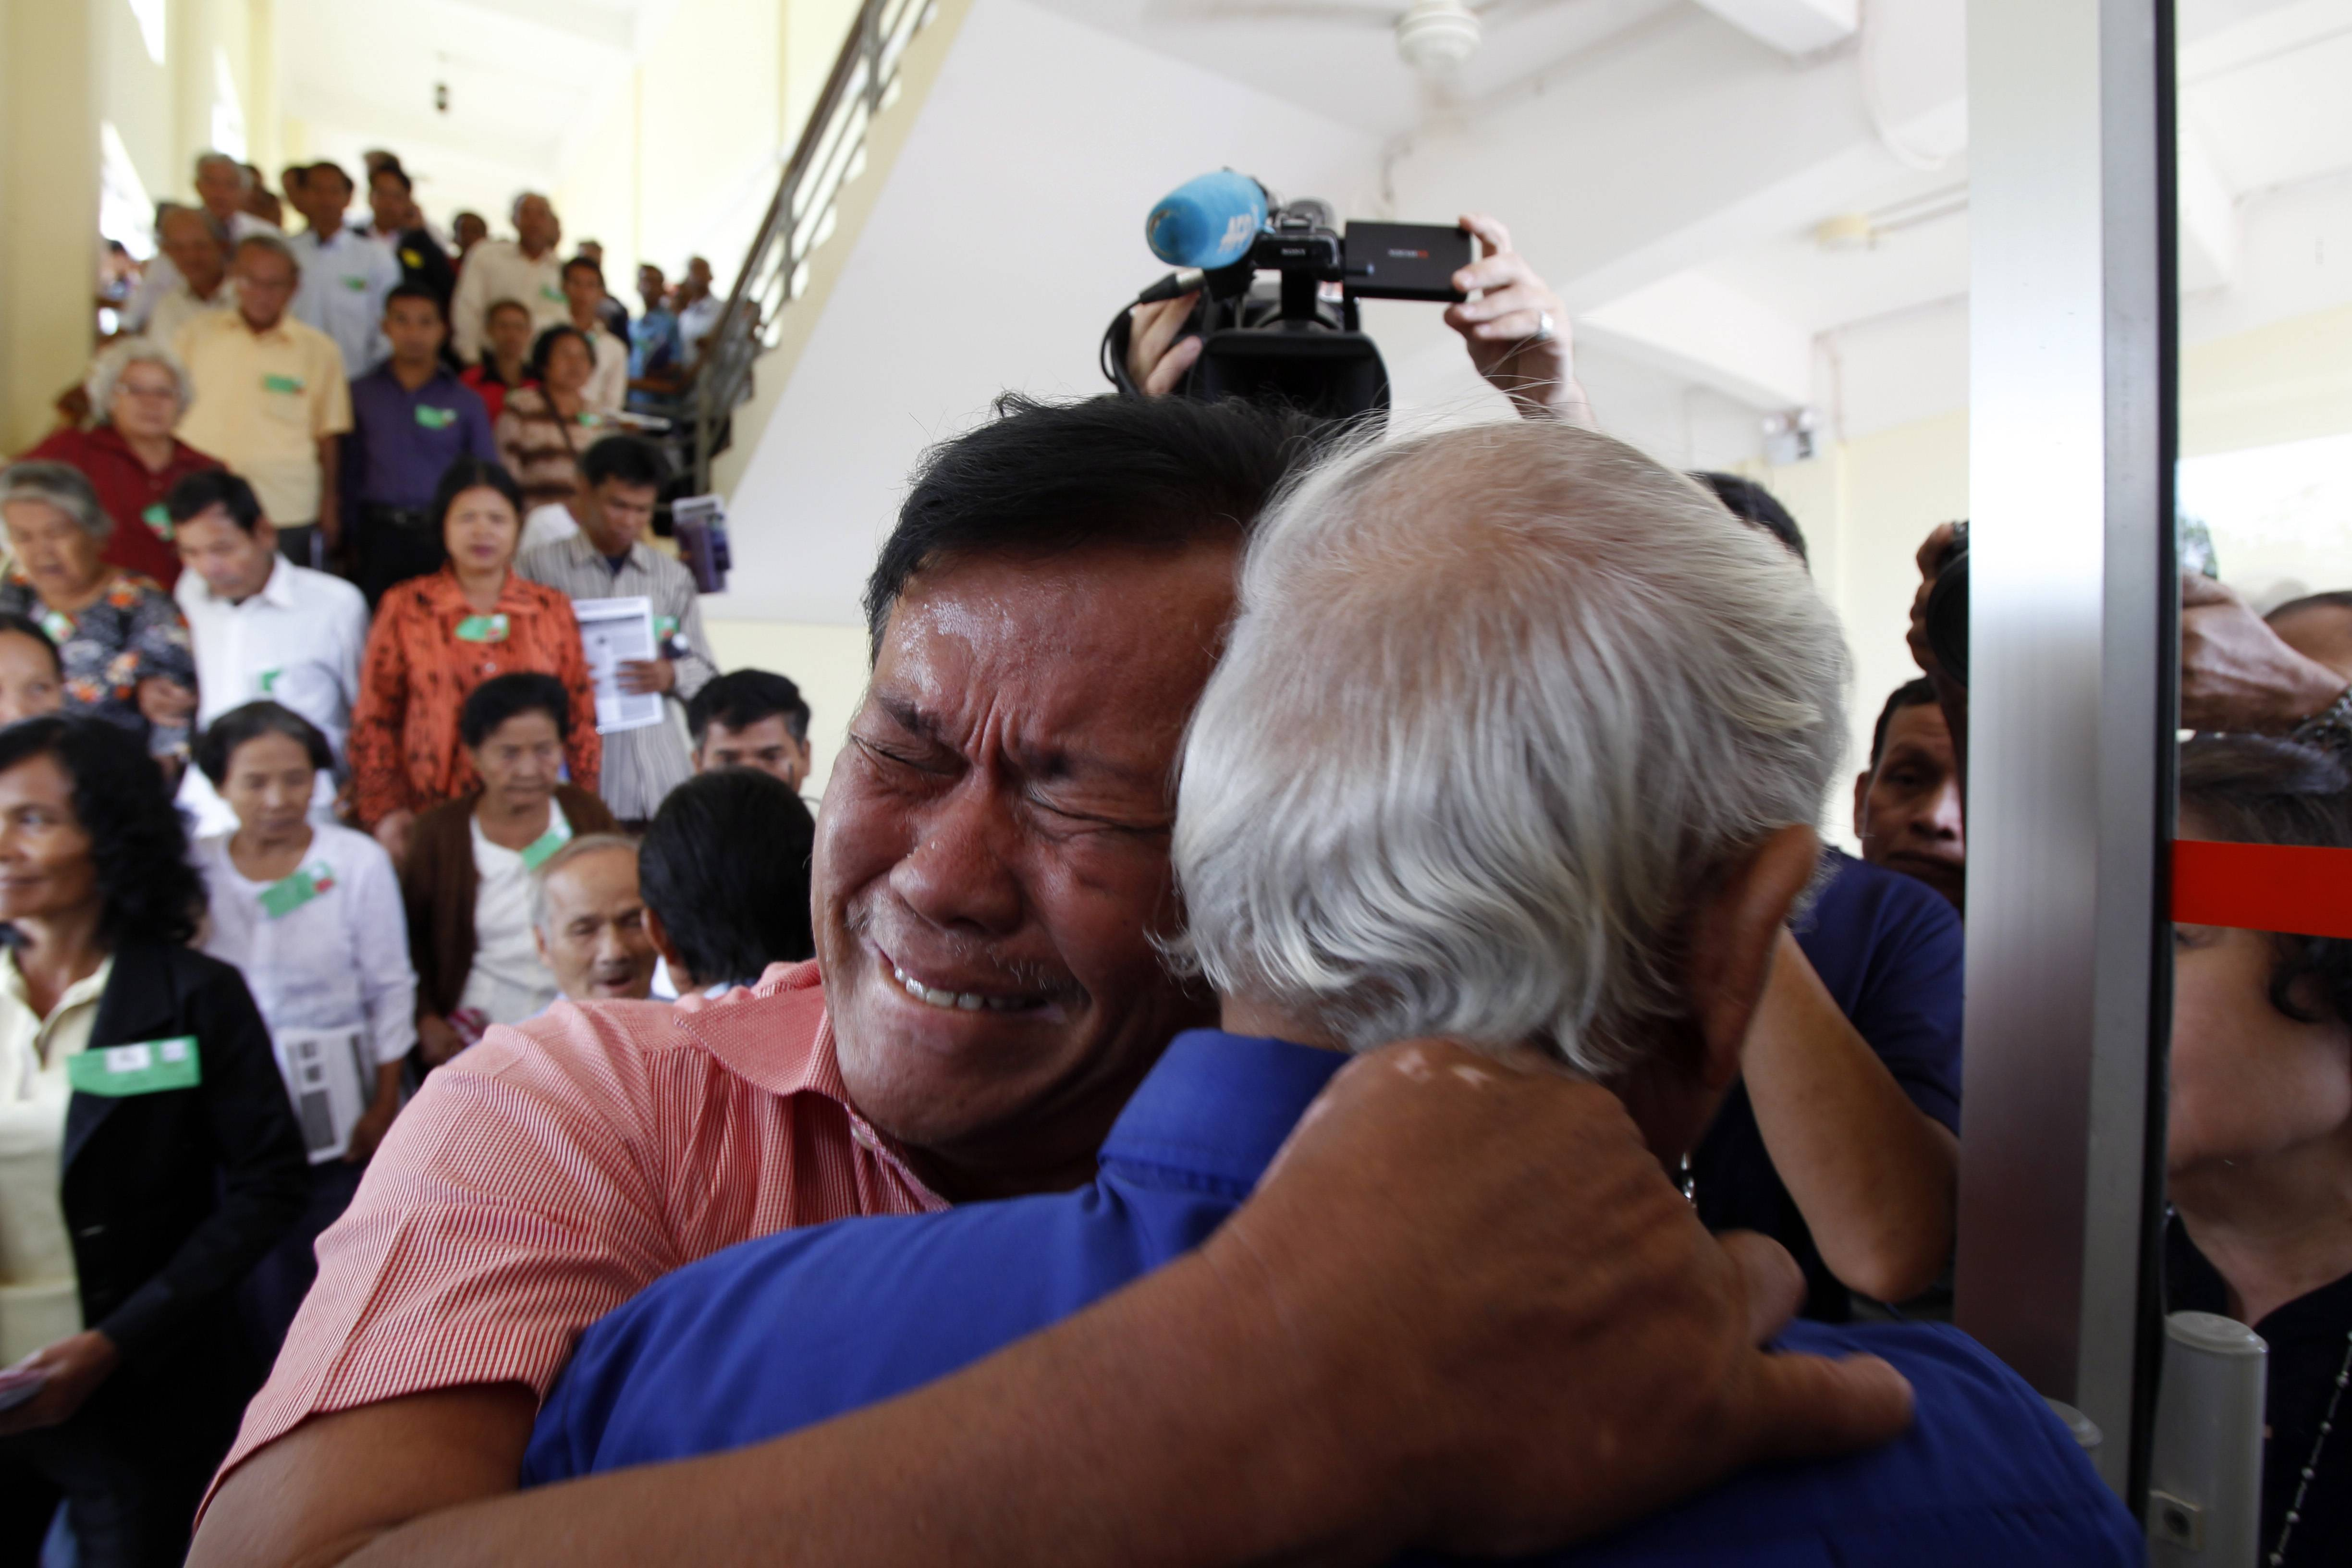 Cambodian former Khmer Rouge servitors, Soum Rithy, left, cries as he hugs Chum Mey, right, after the verdicts were announced, at the U.N.-backed war crimes tribunal in Phnom Penh, Cambodia, Thurdday, Aug. 7, 2014. Three and a half decades after the genocidal rule of Cambodia's Khmer Rouge ended, the tribunal on Thursday sentenced two top leaders of the former regime to life in prison on war crimes charges for their role in the country's terror period in the 1970s.